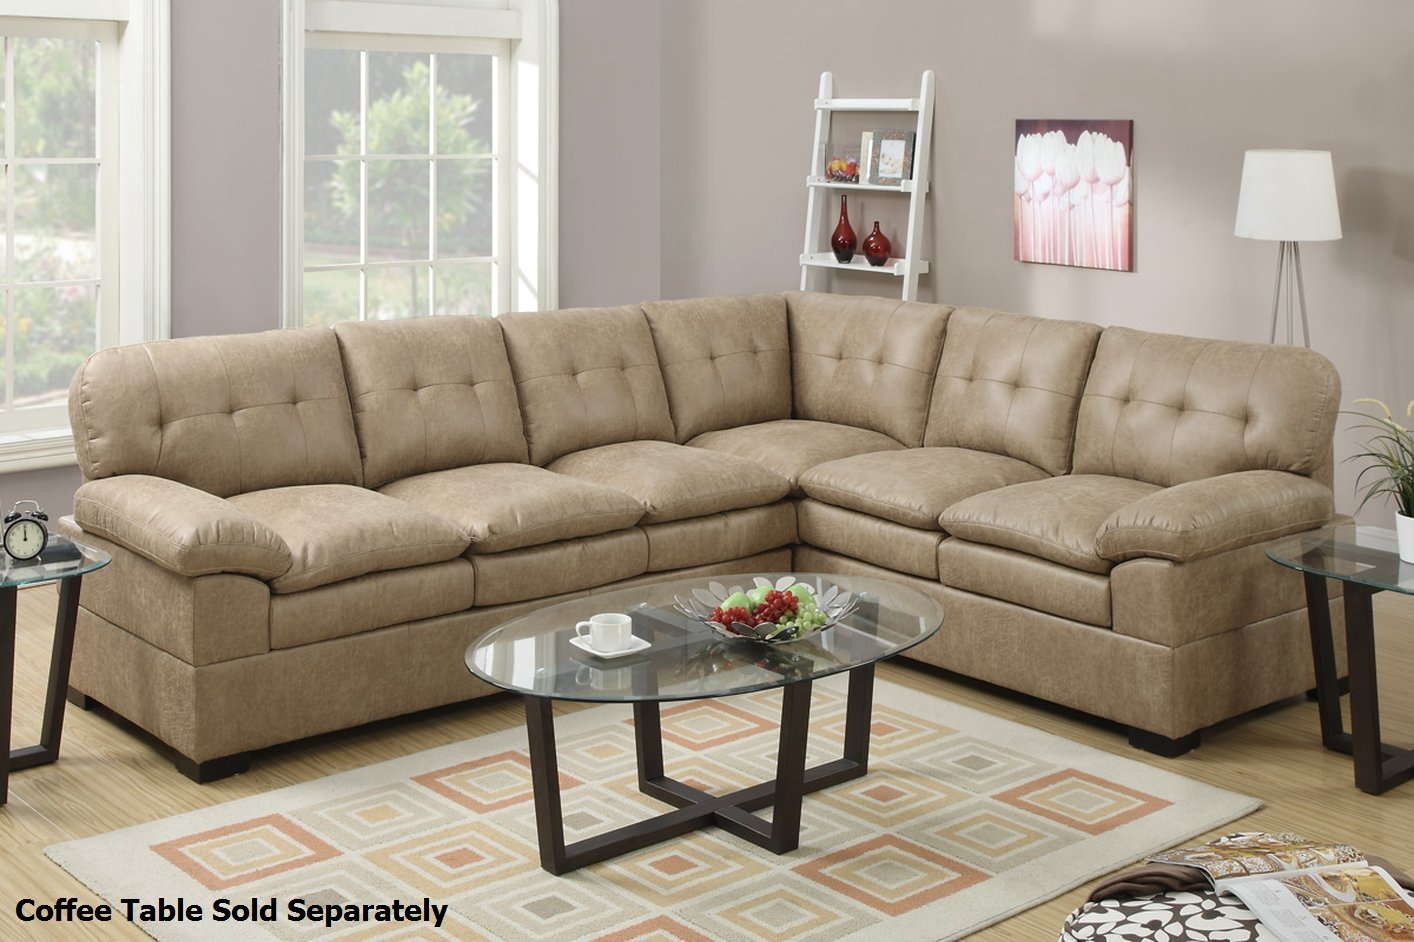 Poundex Tyson F7684 Brown Fabric Sectional Sofa Steal A